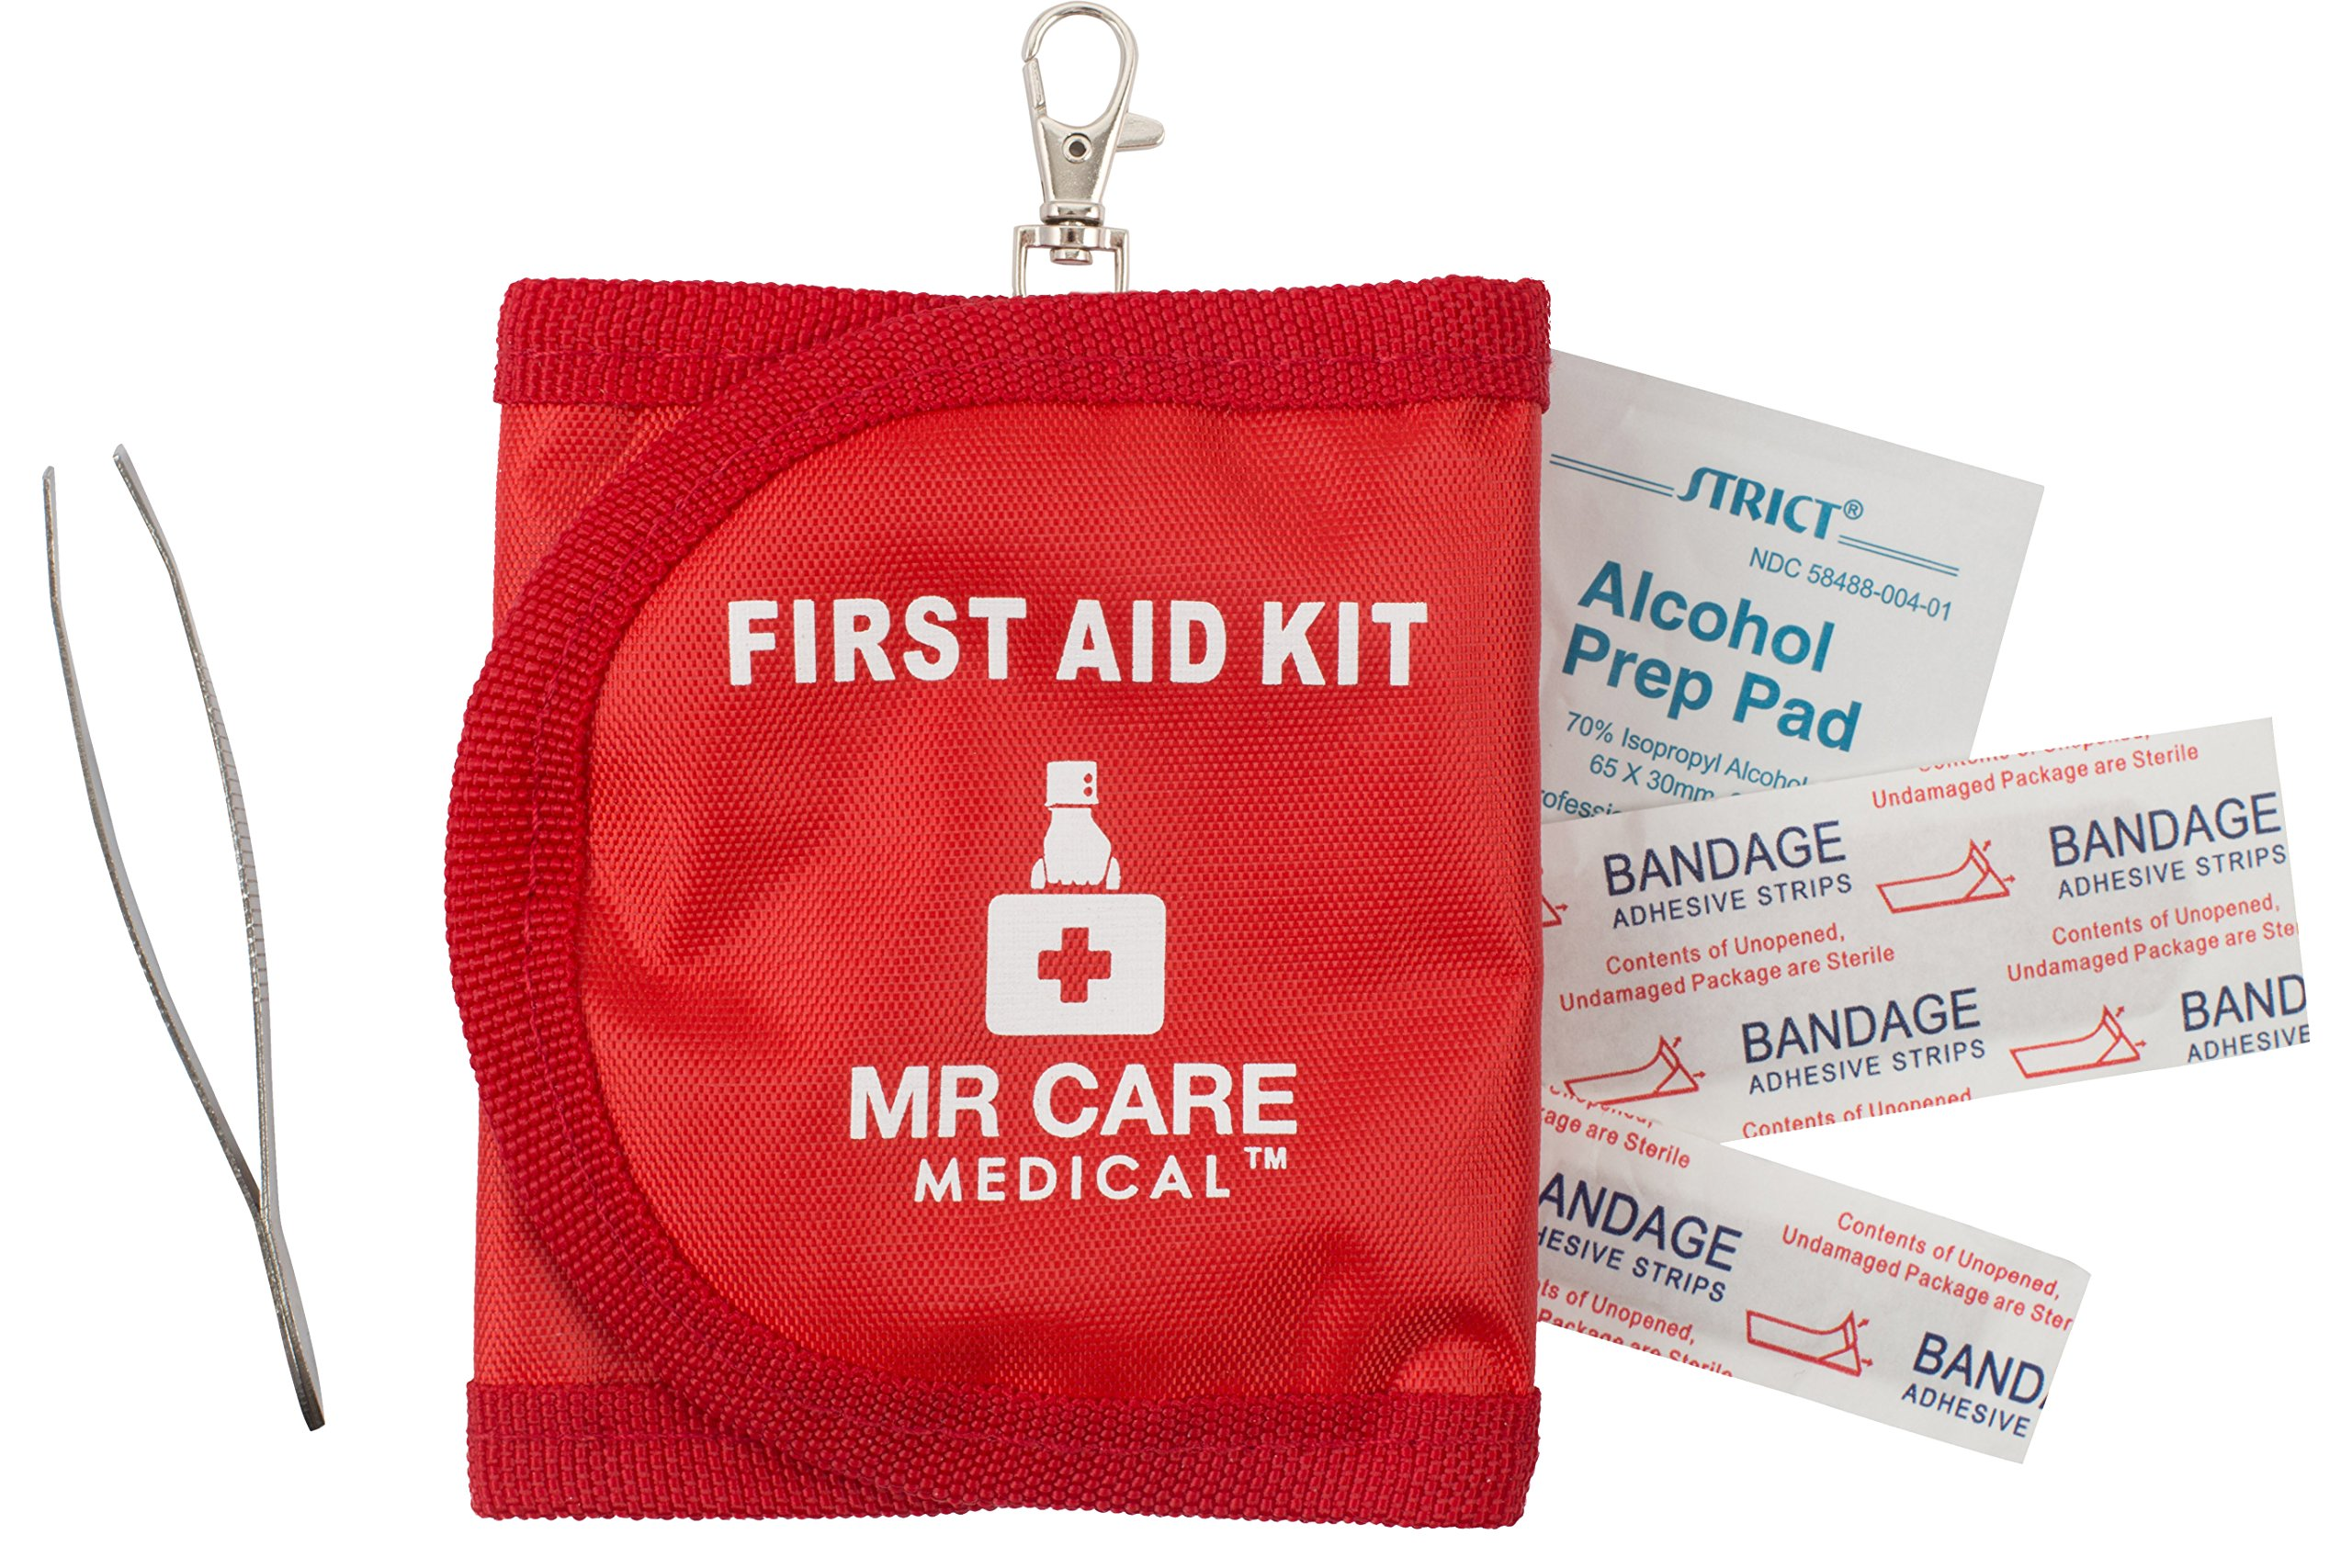 30 Piece First Aid Kit - Travel & Camping Compact and Portable Mini Emergency Response Kit with Keychain - by Mr Care Medical